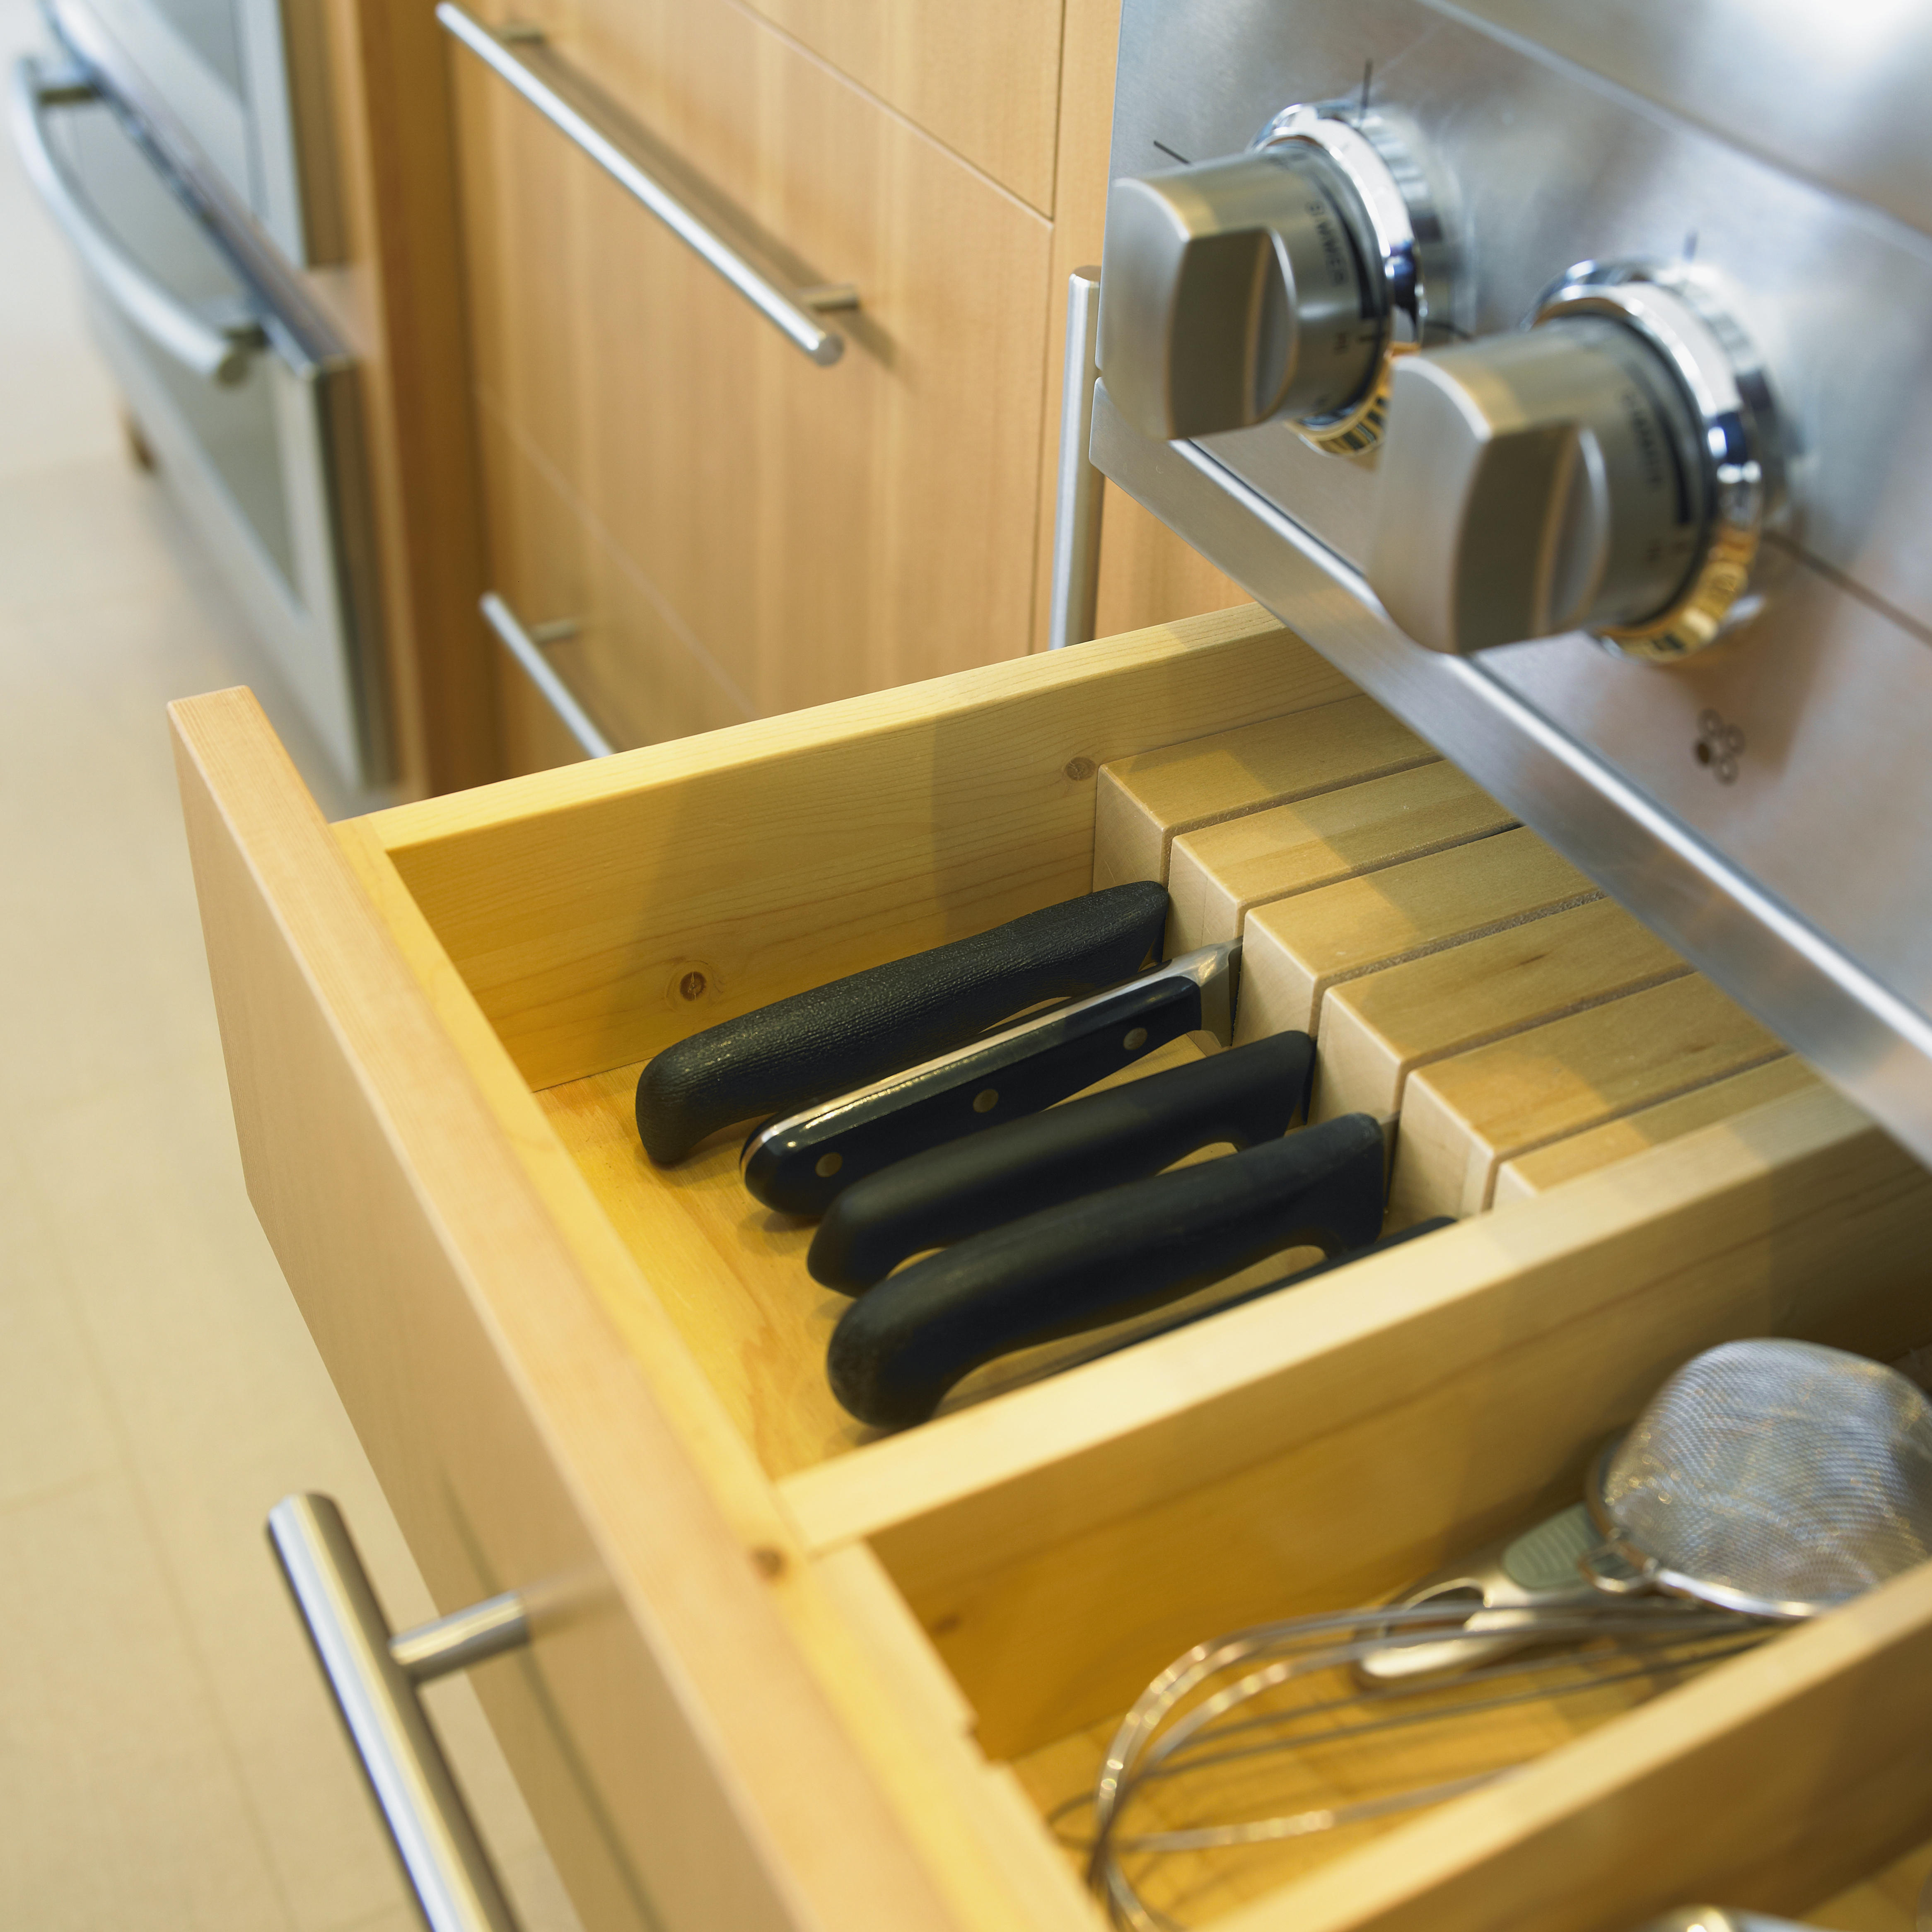 How To Store Your Knives The Right Way Cnet